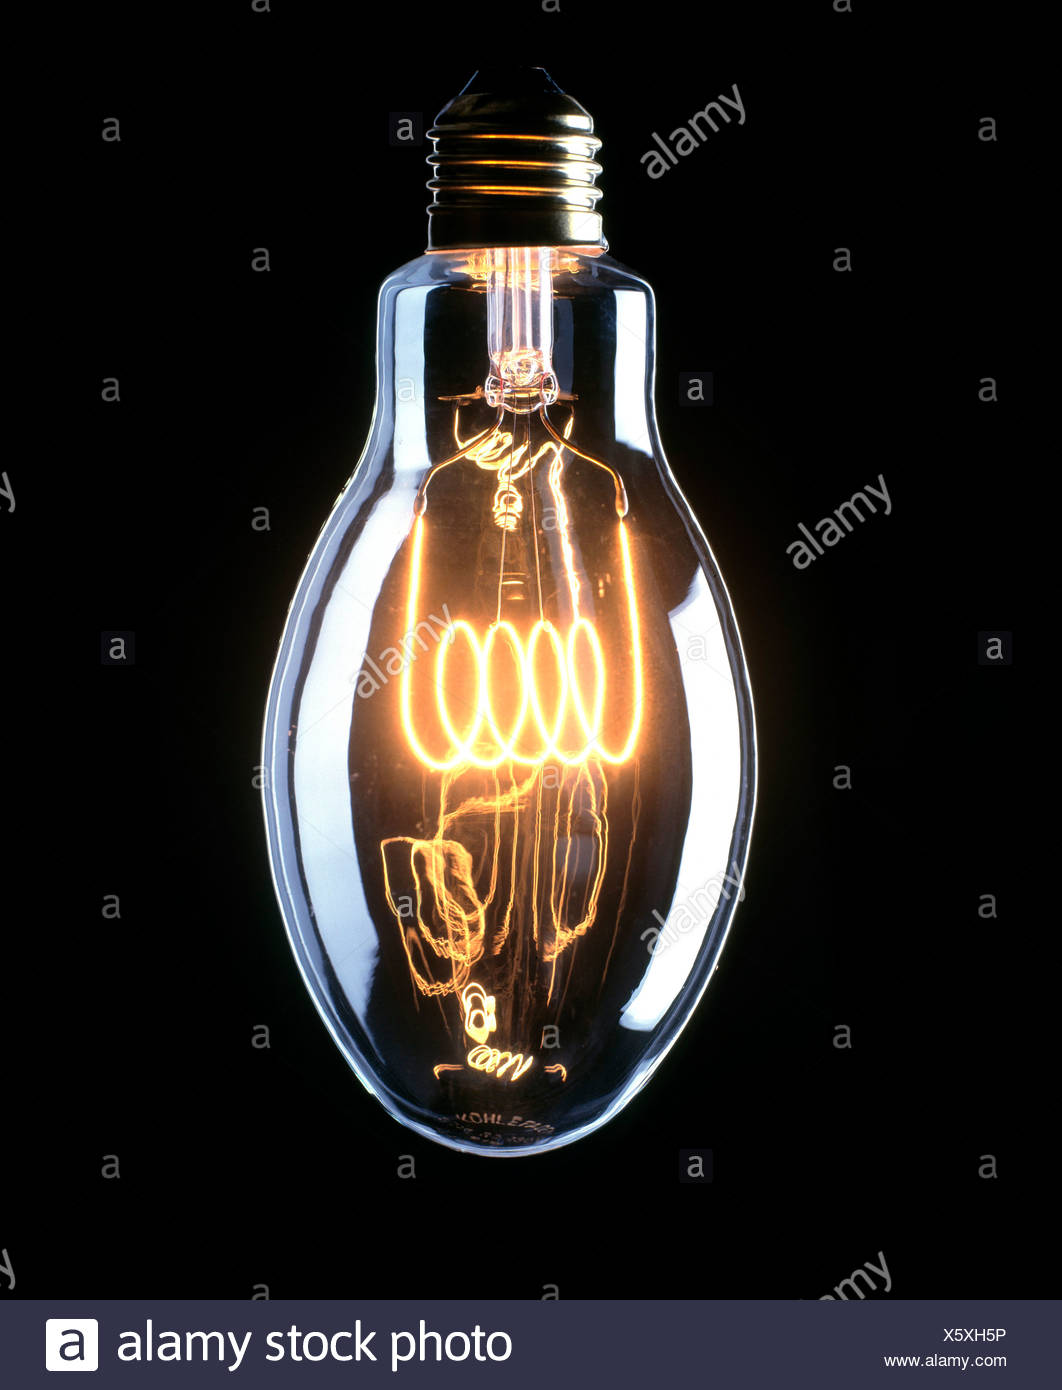 Carbon Filament Lamp Stock Photos Besides Incandescent Light Bulbs On Bulb Diagram Image